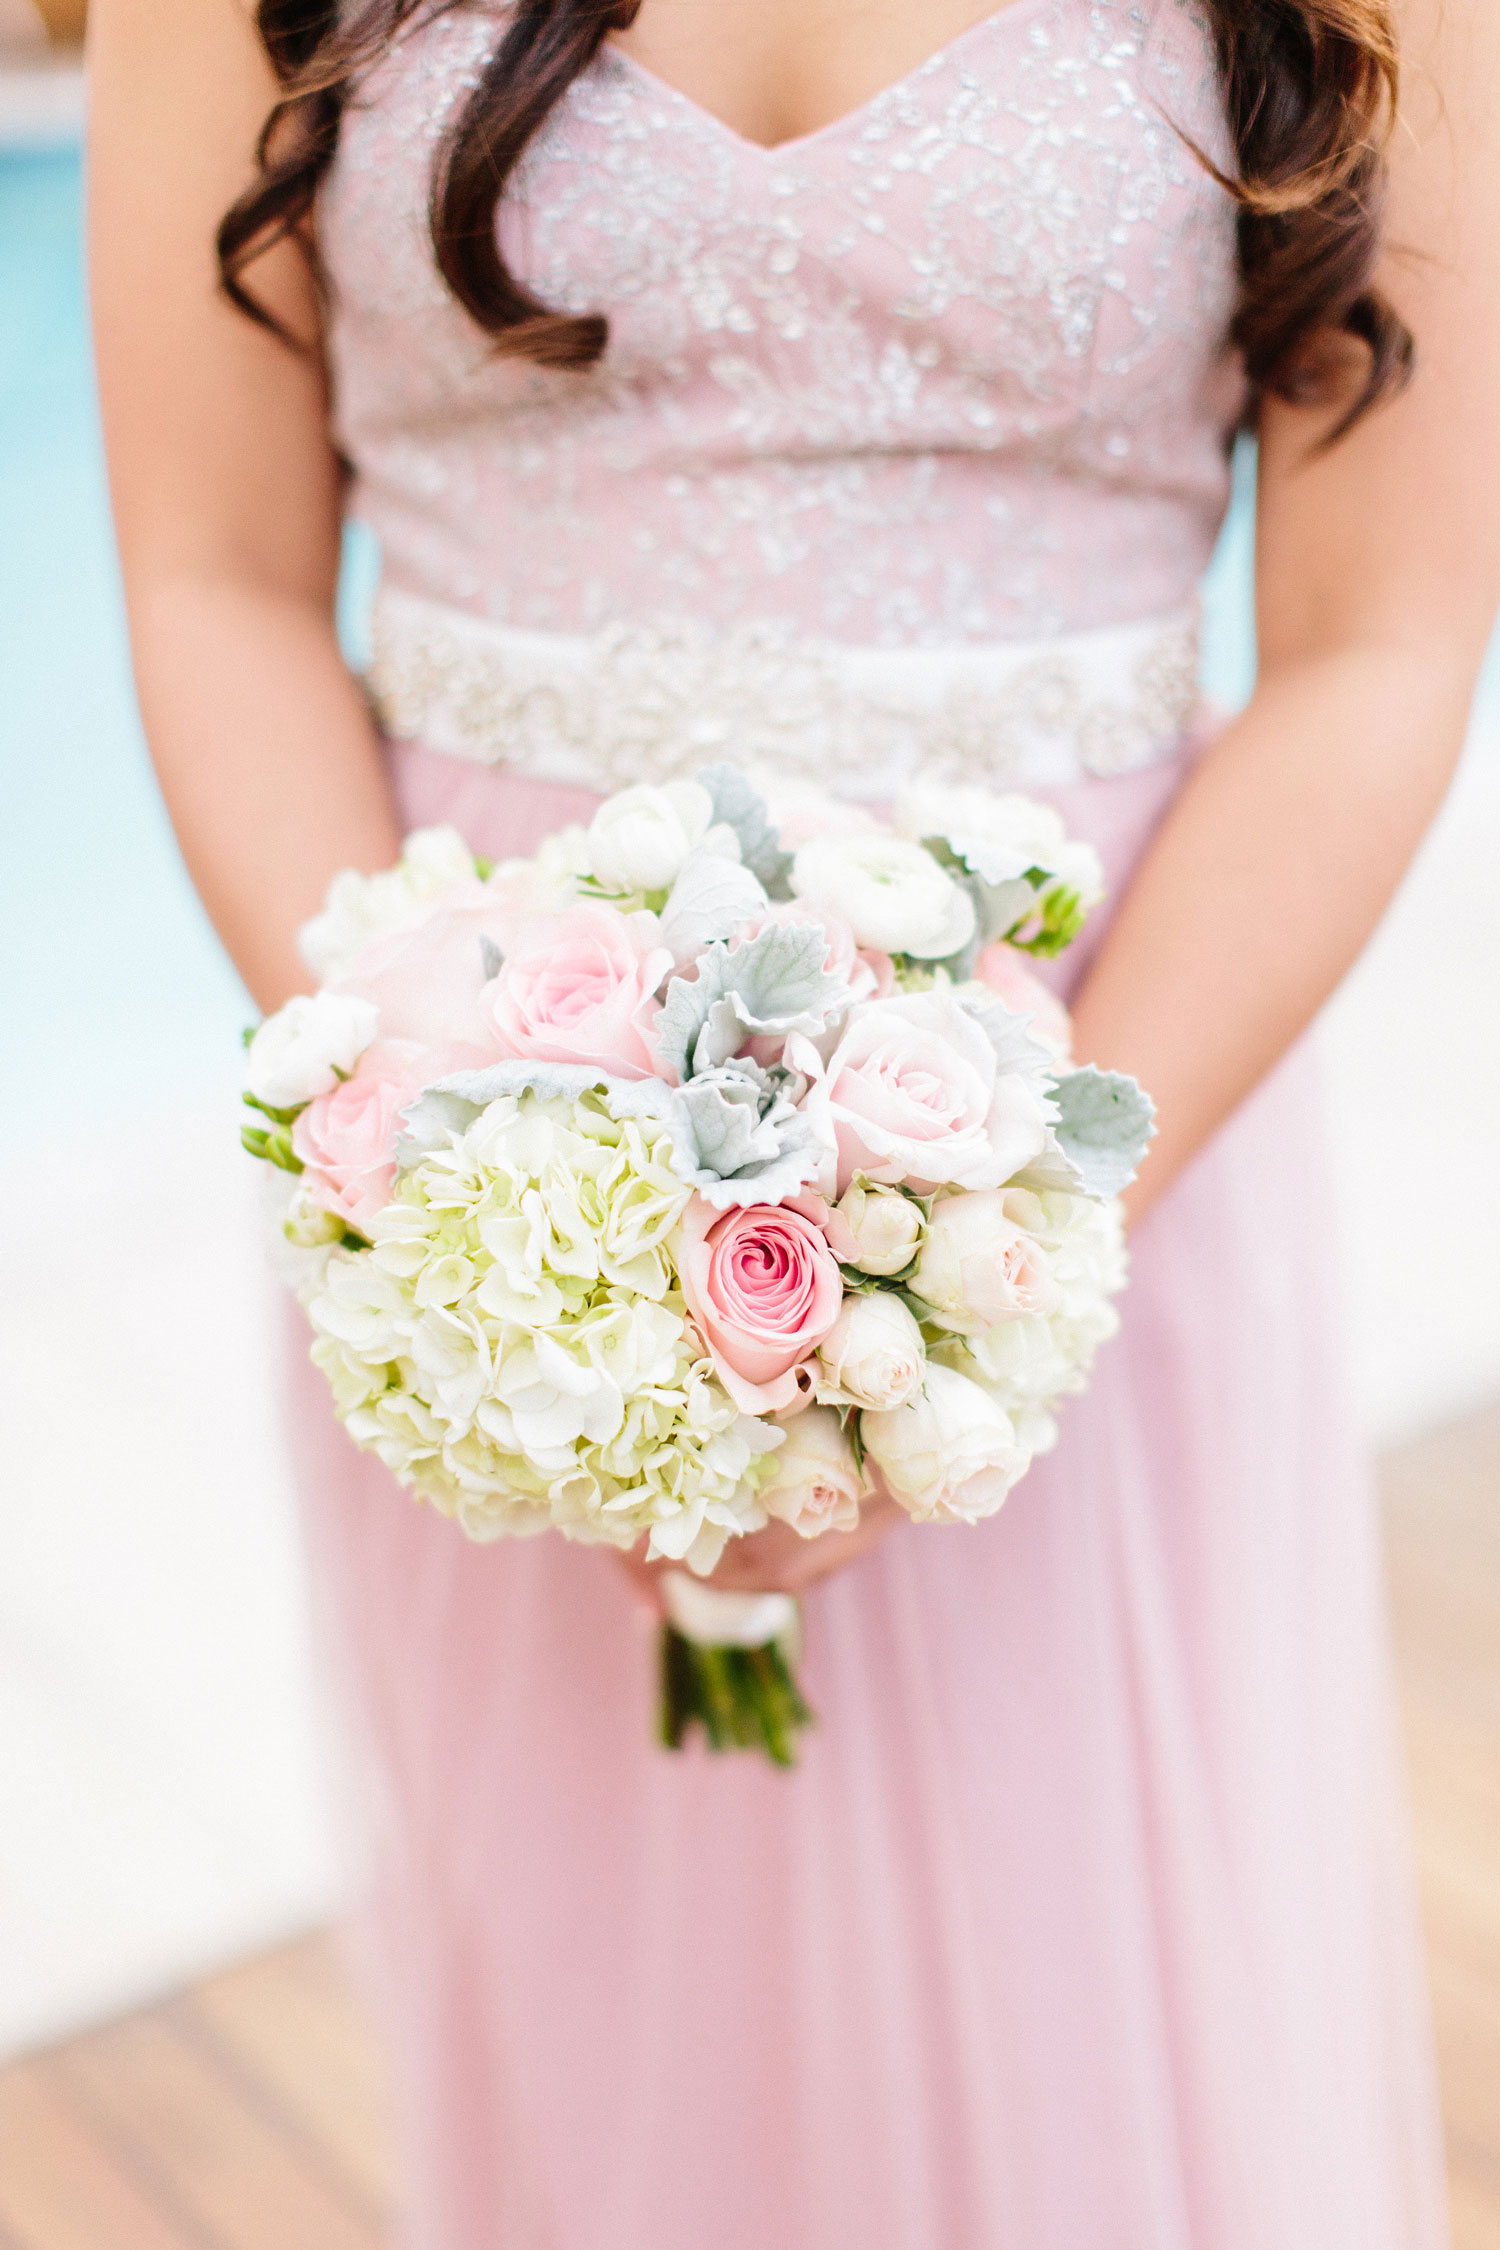 Wedding Flowers Bridal Bouquet Ideas For Spring Weddings Inside